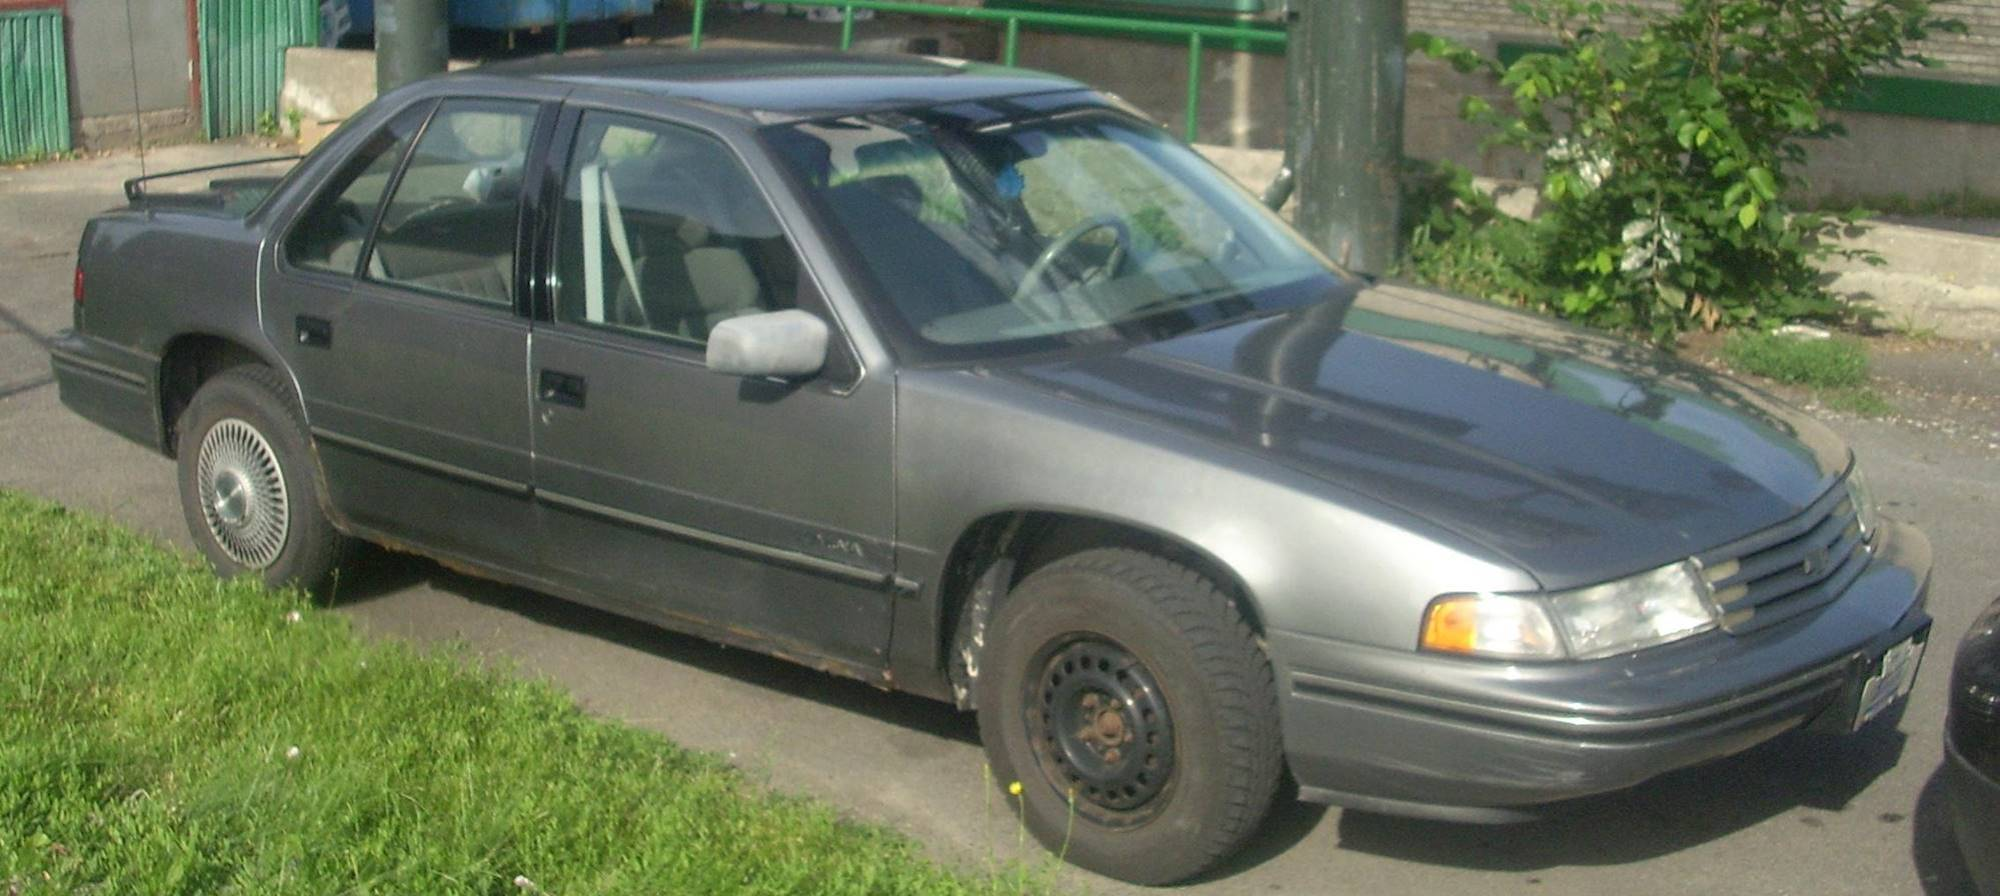 hight resolution of ugliest cars ever made 94 chevy lumina